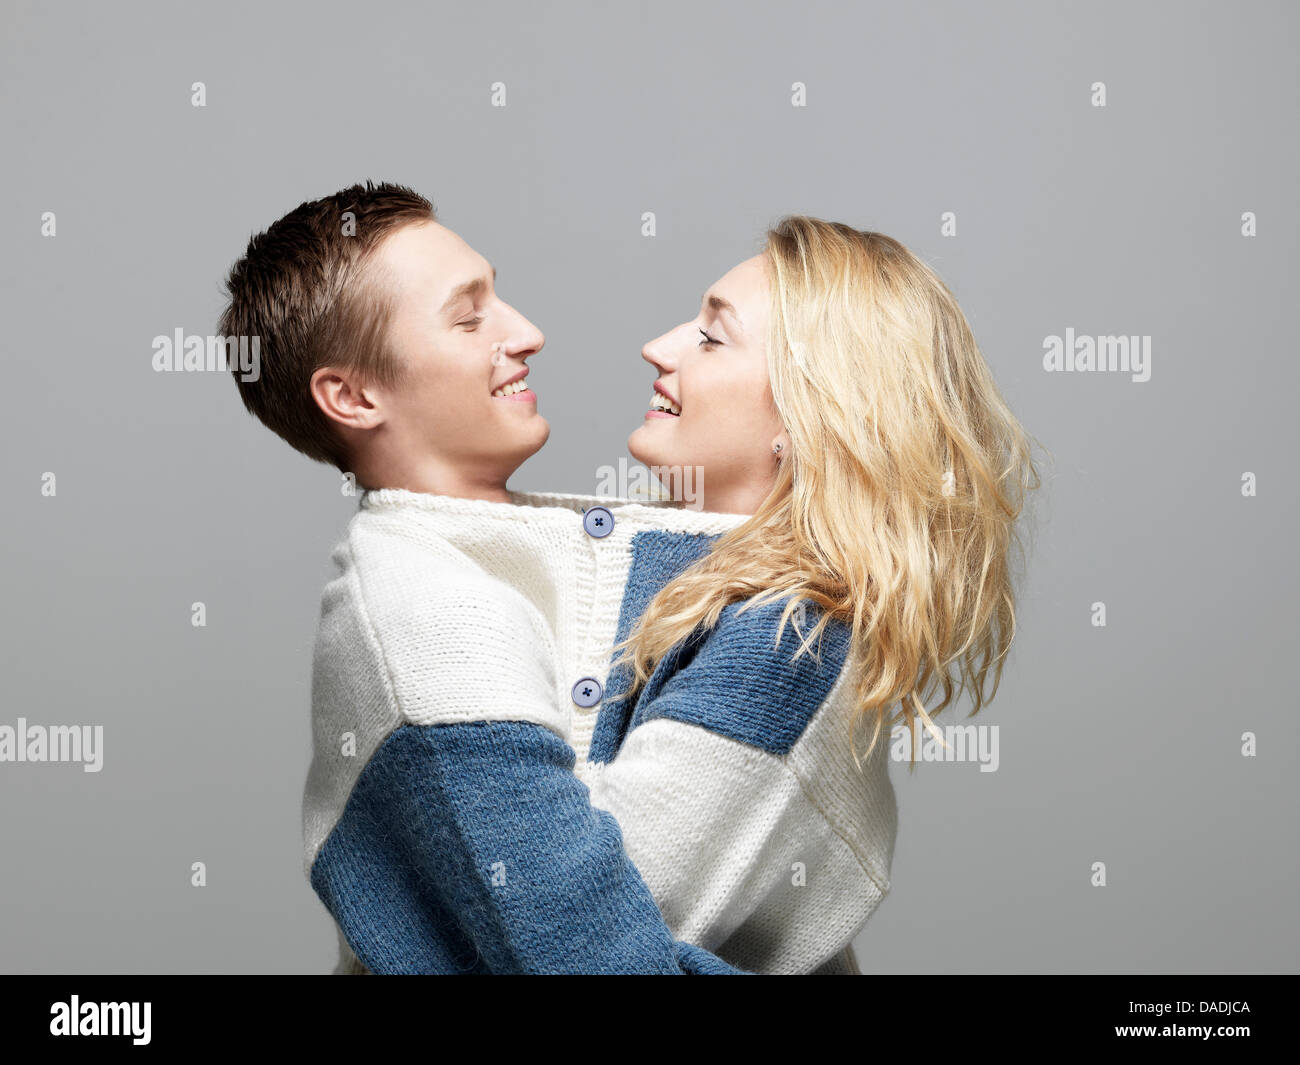 Young couple wearing same sweater - Stock Image